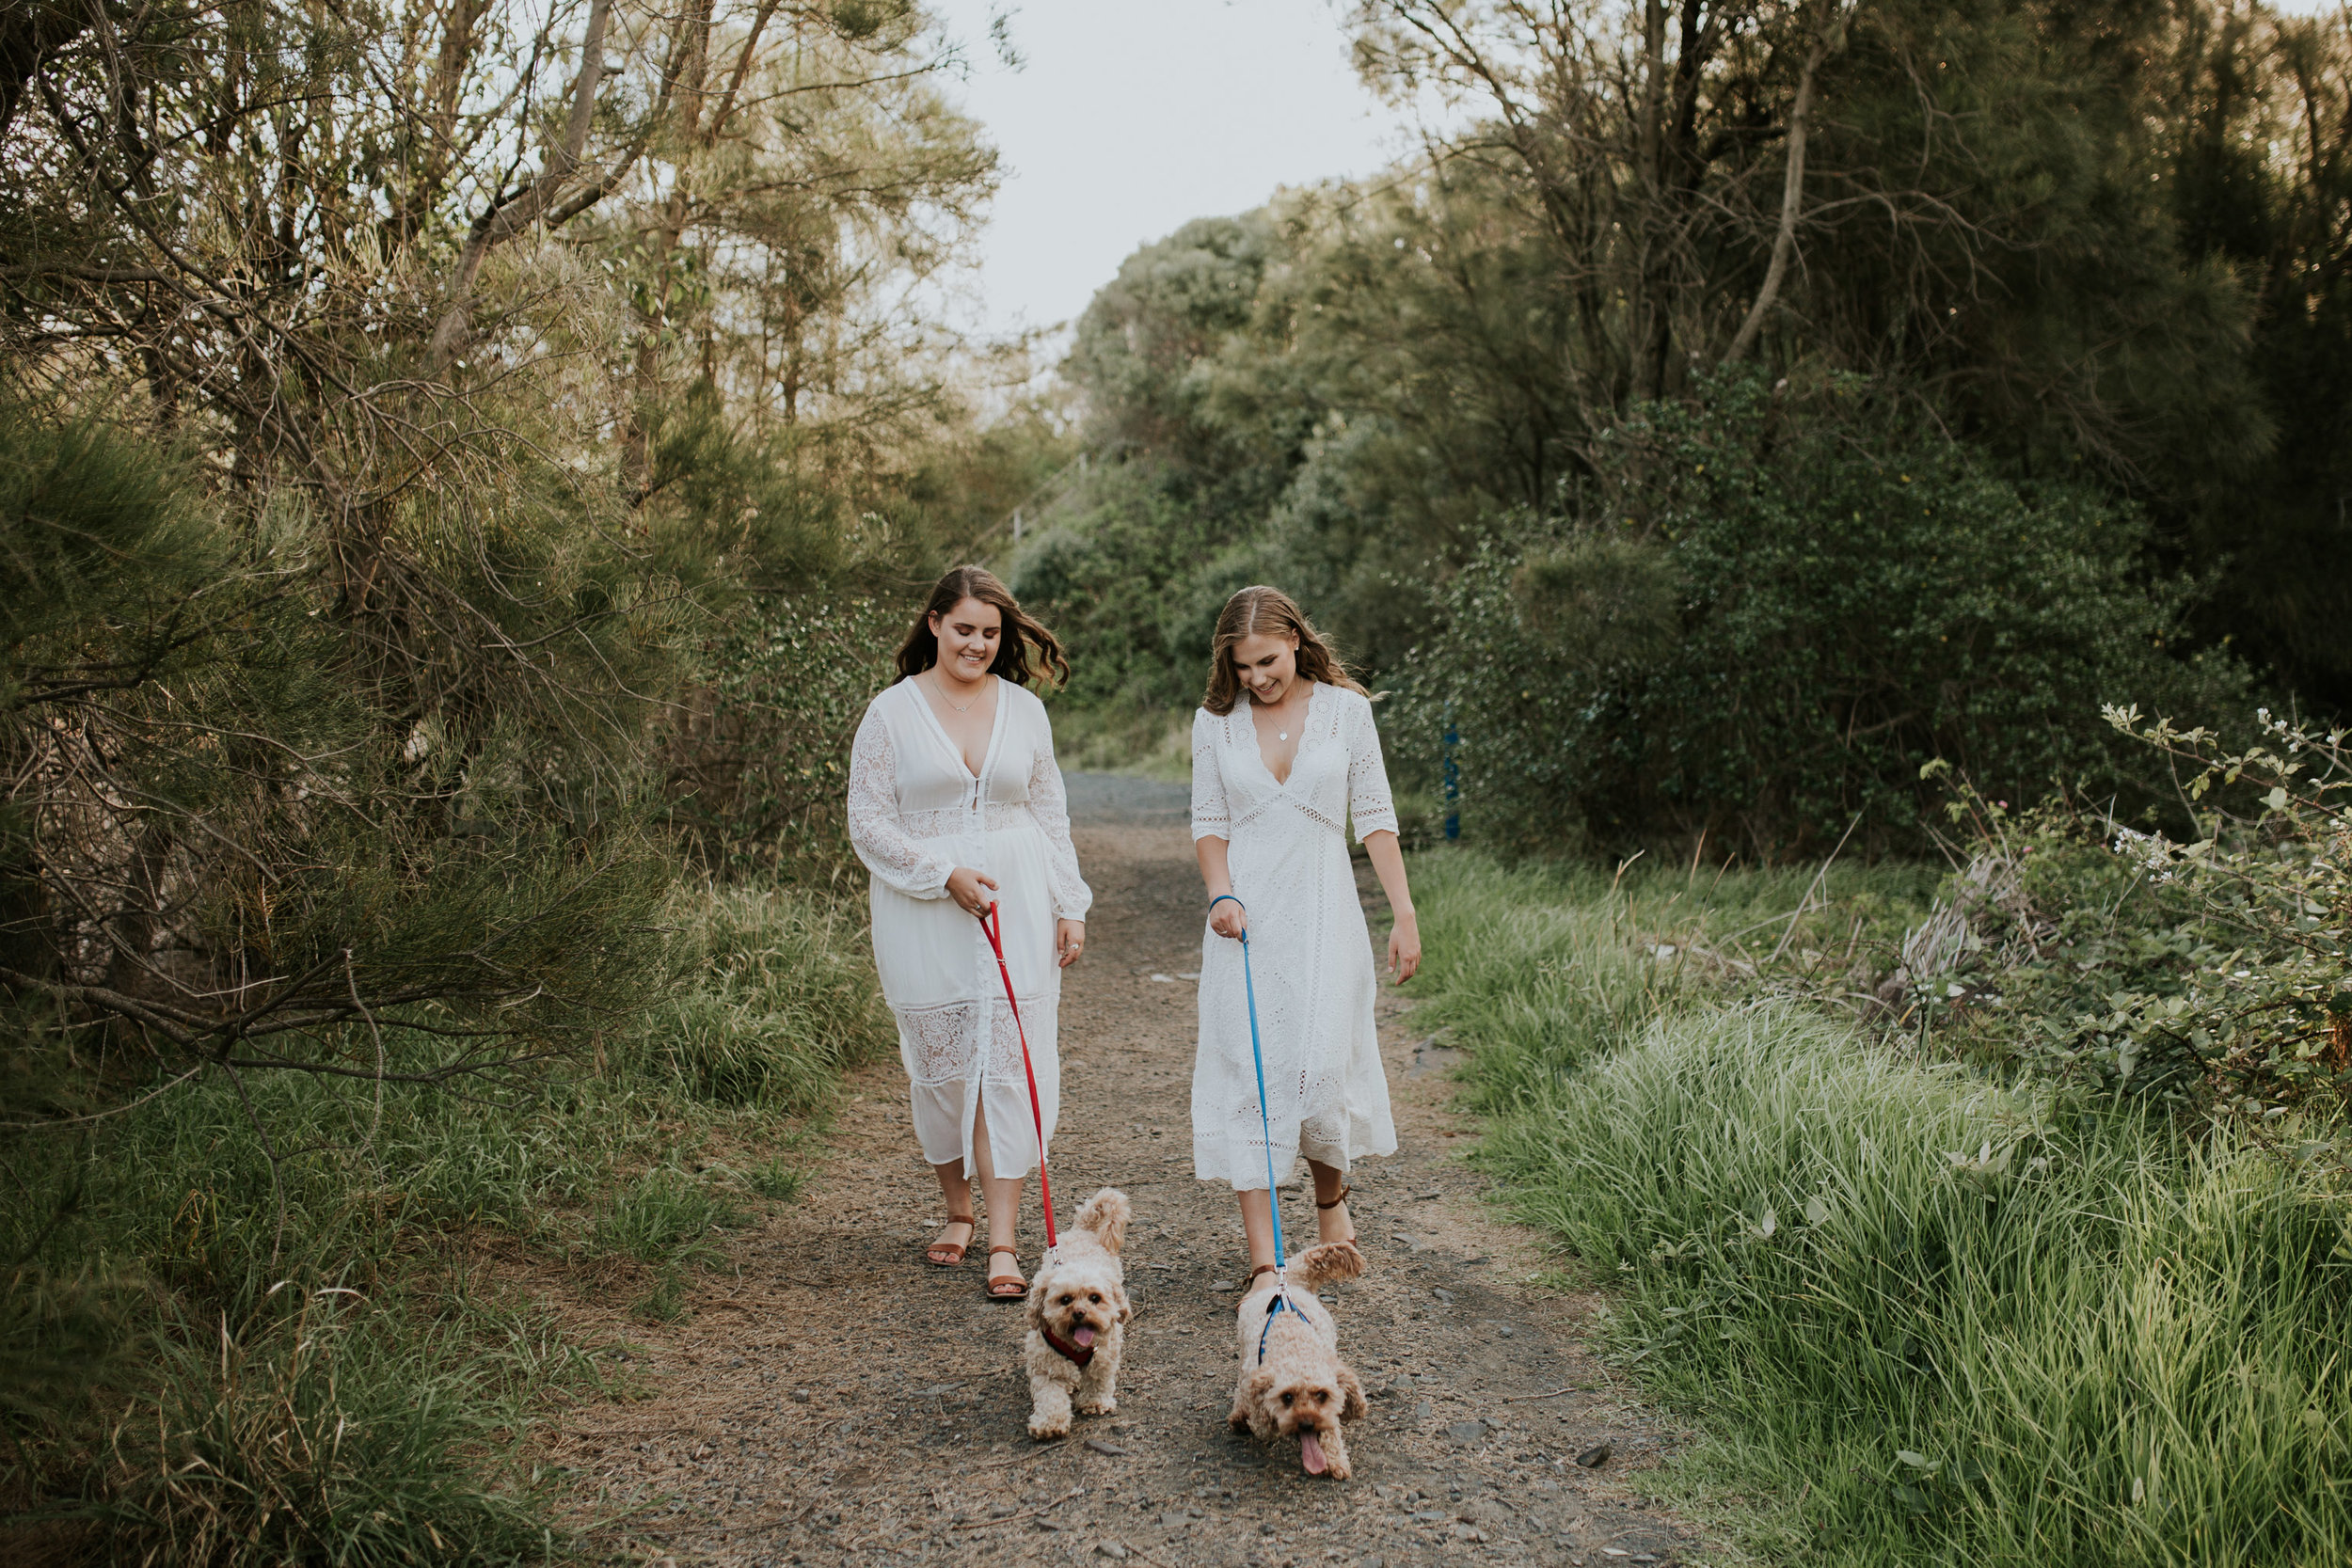 Meg+Leah+sisters+Relaxed+family+Session+Kiama+-14.jpg